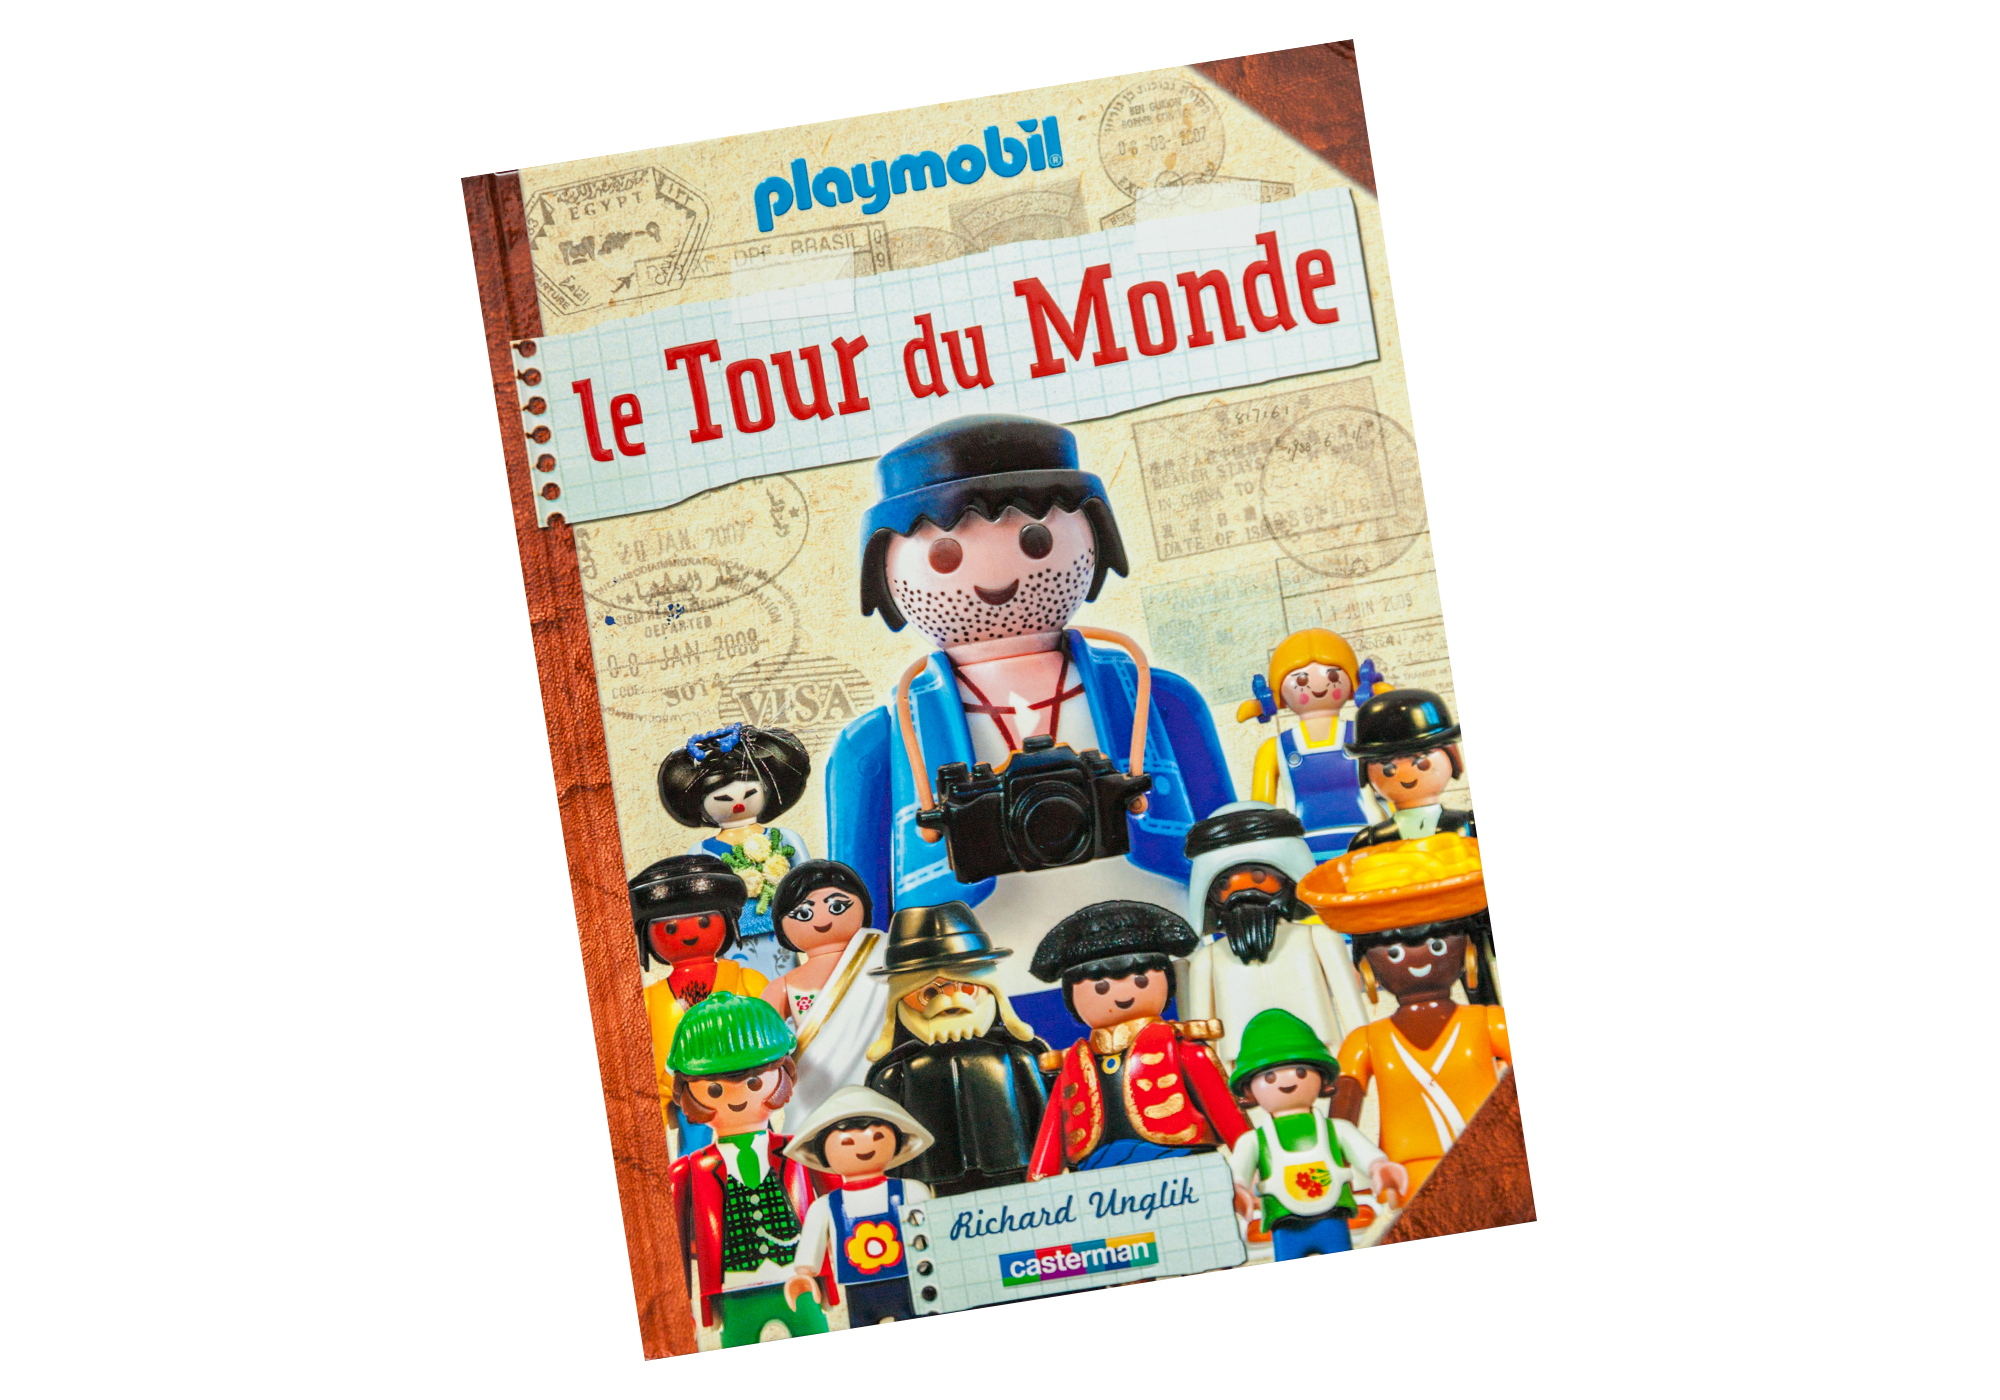 http://media.playmobil.com/i/playmobil/80324_product_detail